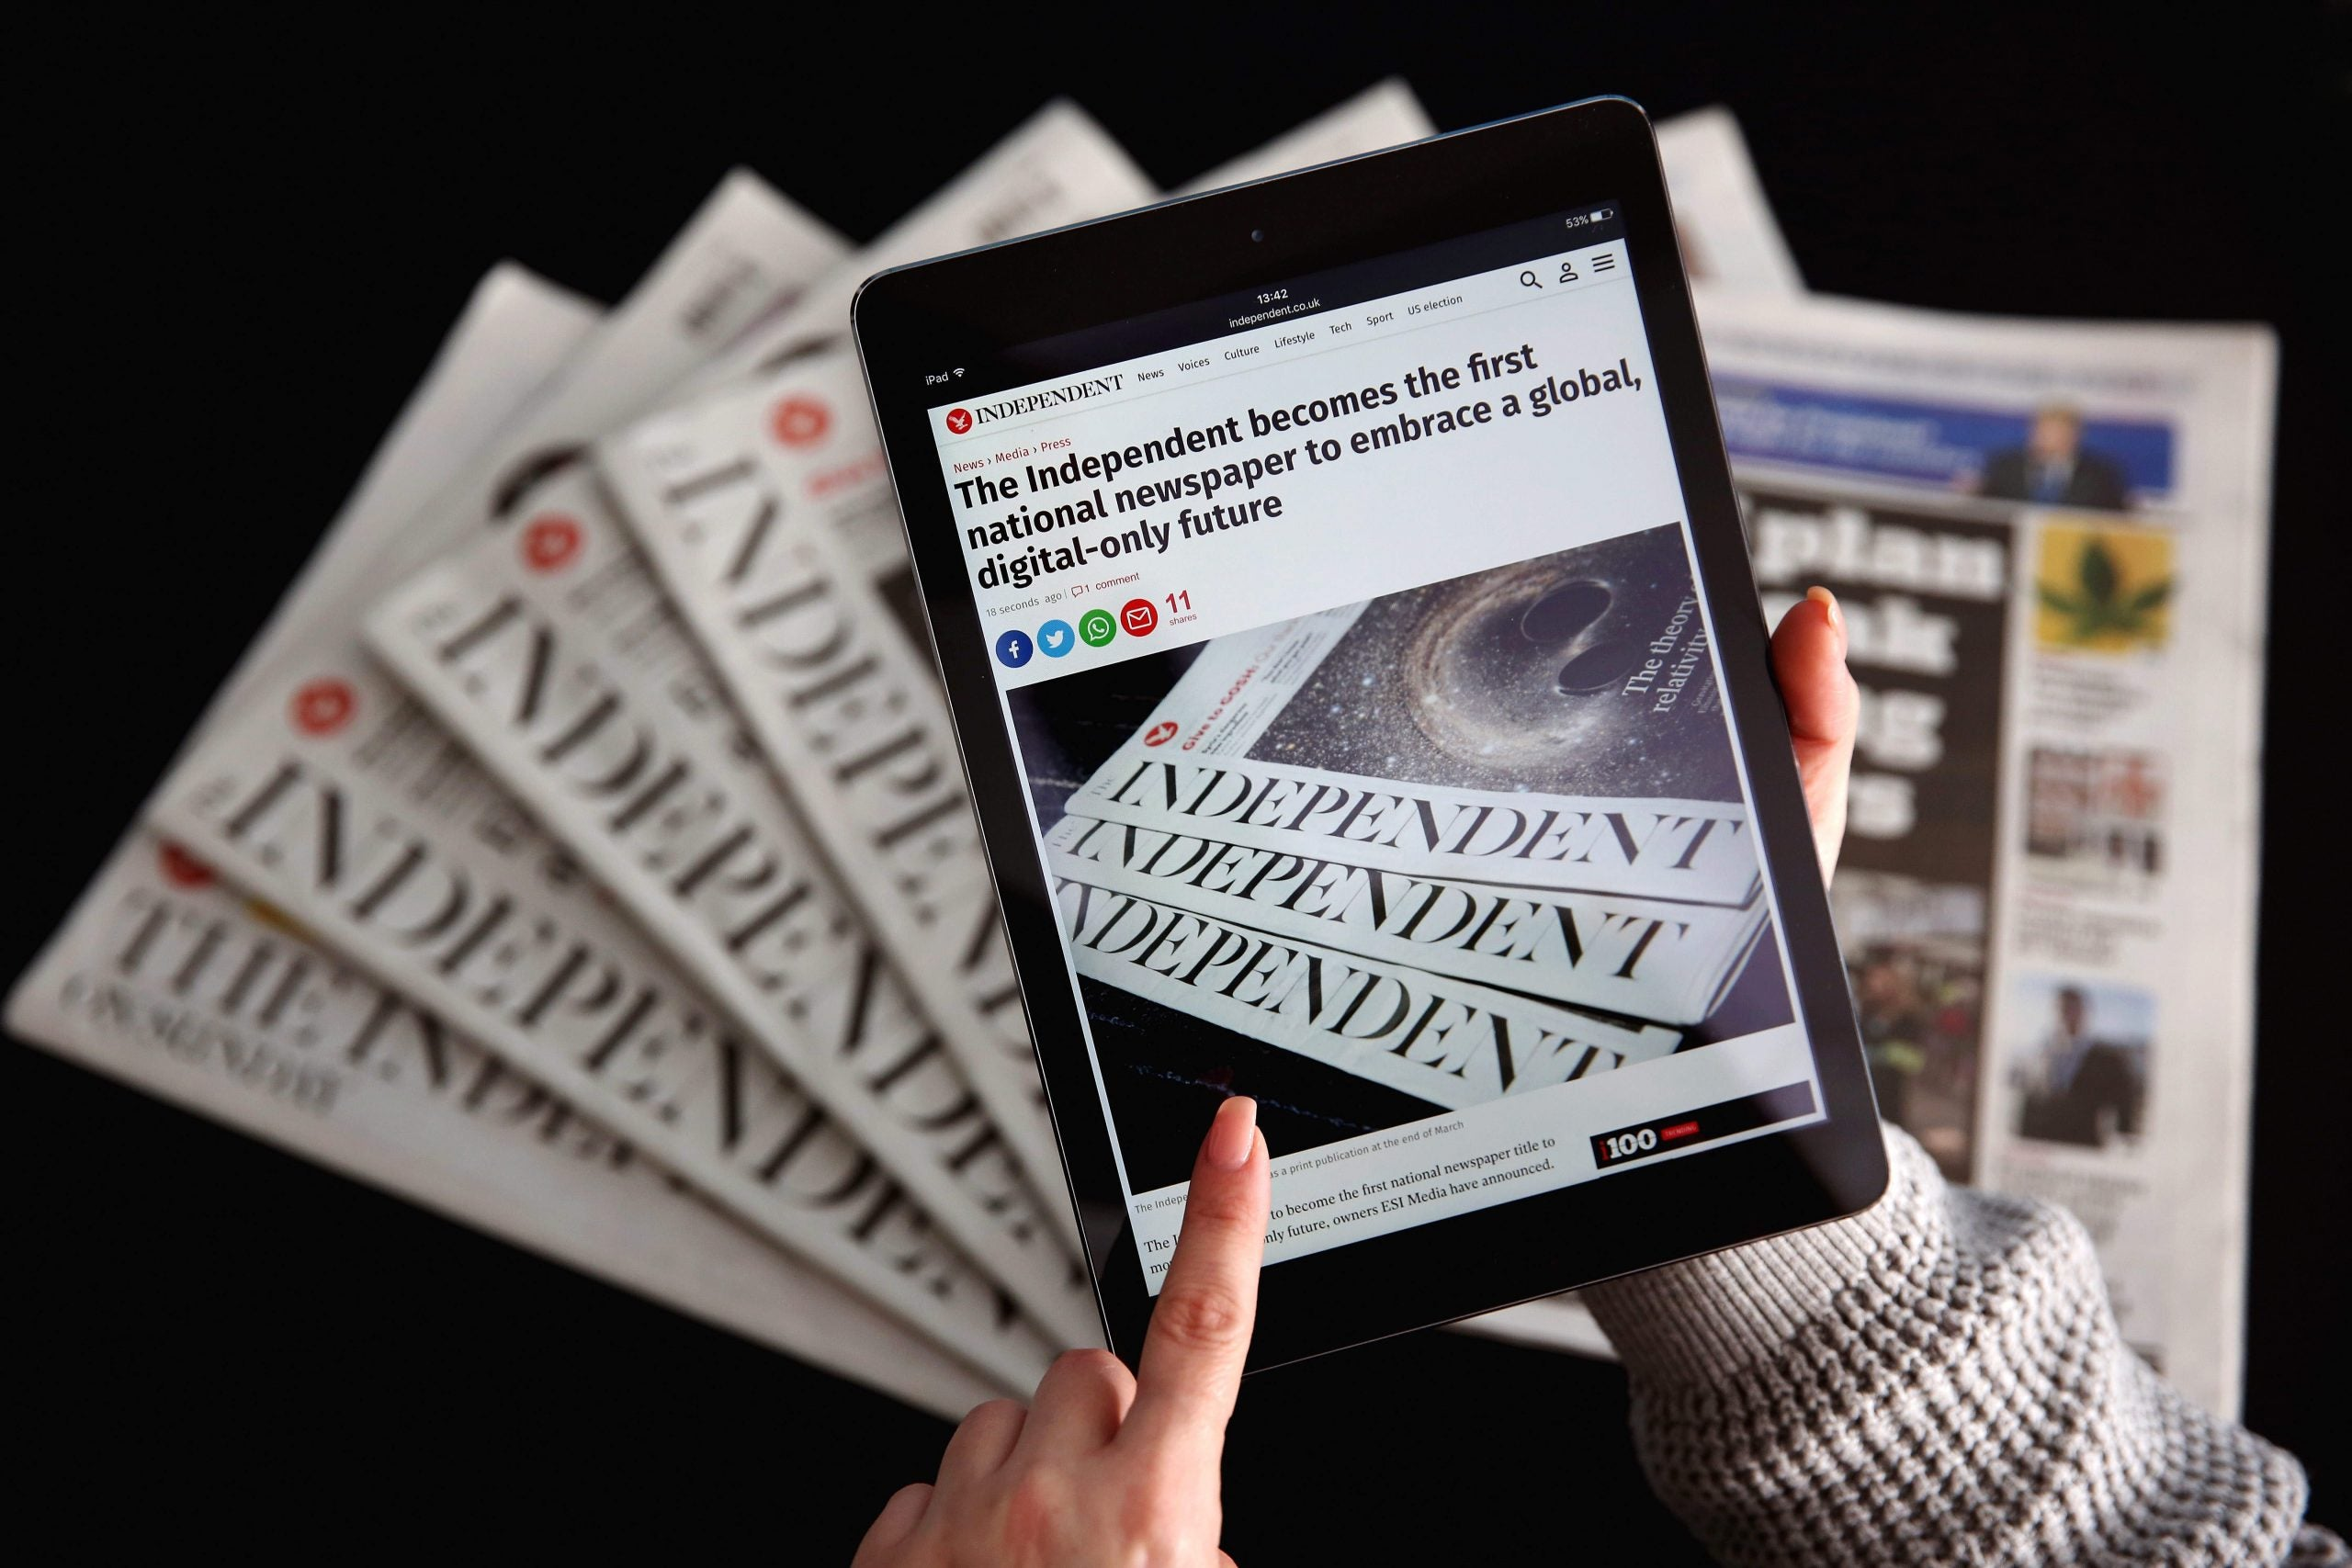 Creative destruction, Rupert Murdoch and the rise and fall of the Independent